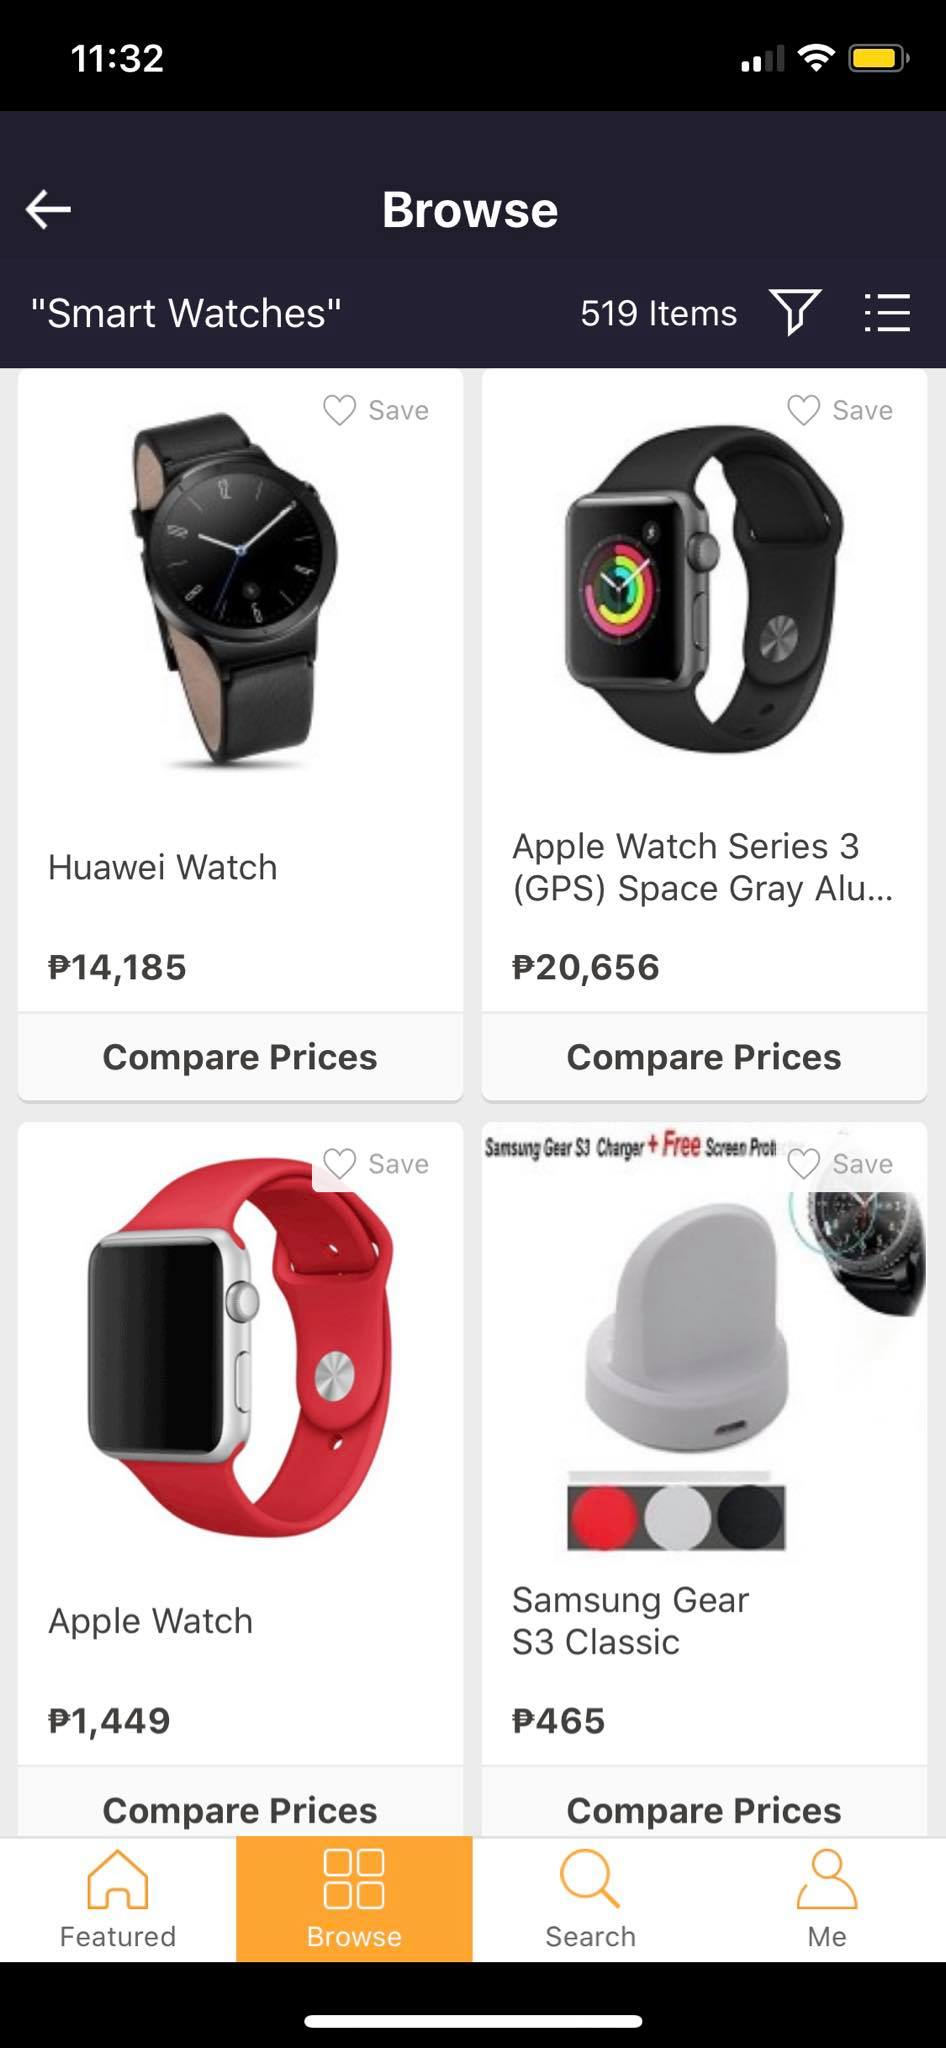 Browse on iOS by Priceza from UIGarage